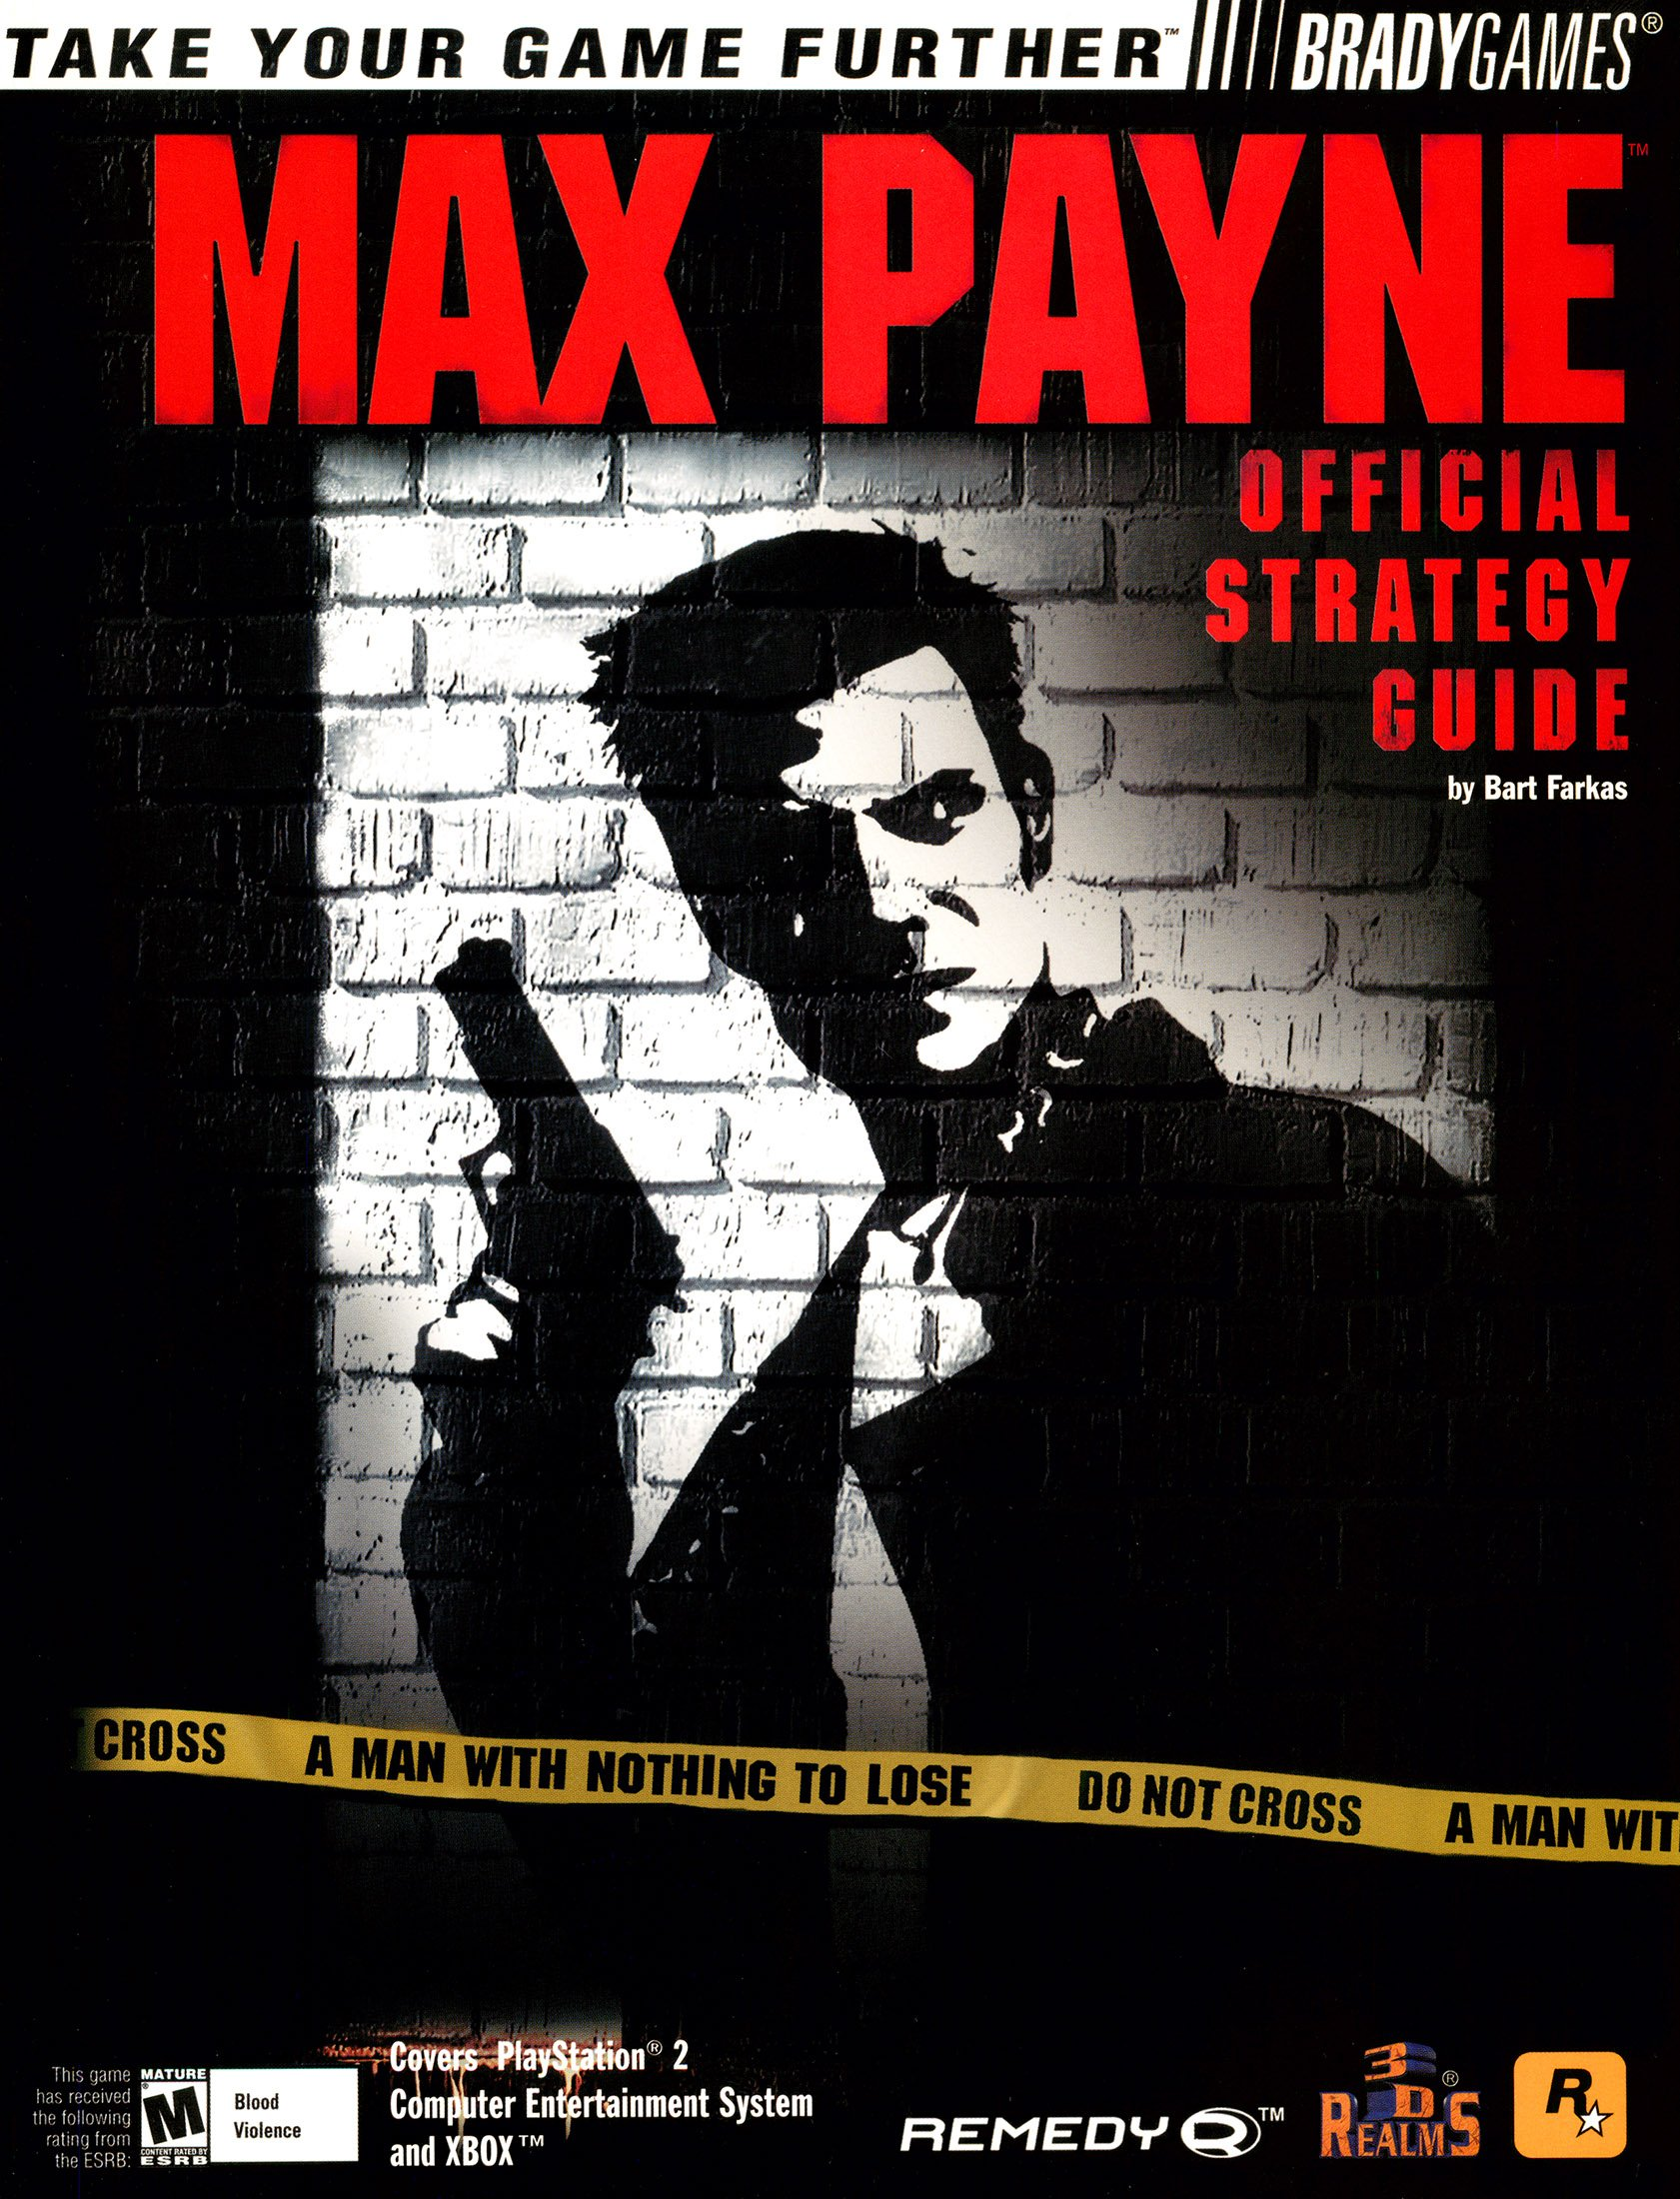 Max Payne Official Strategy Guide